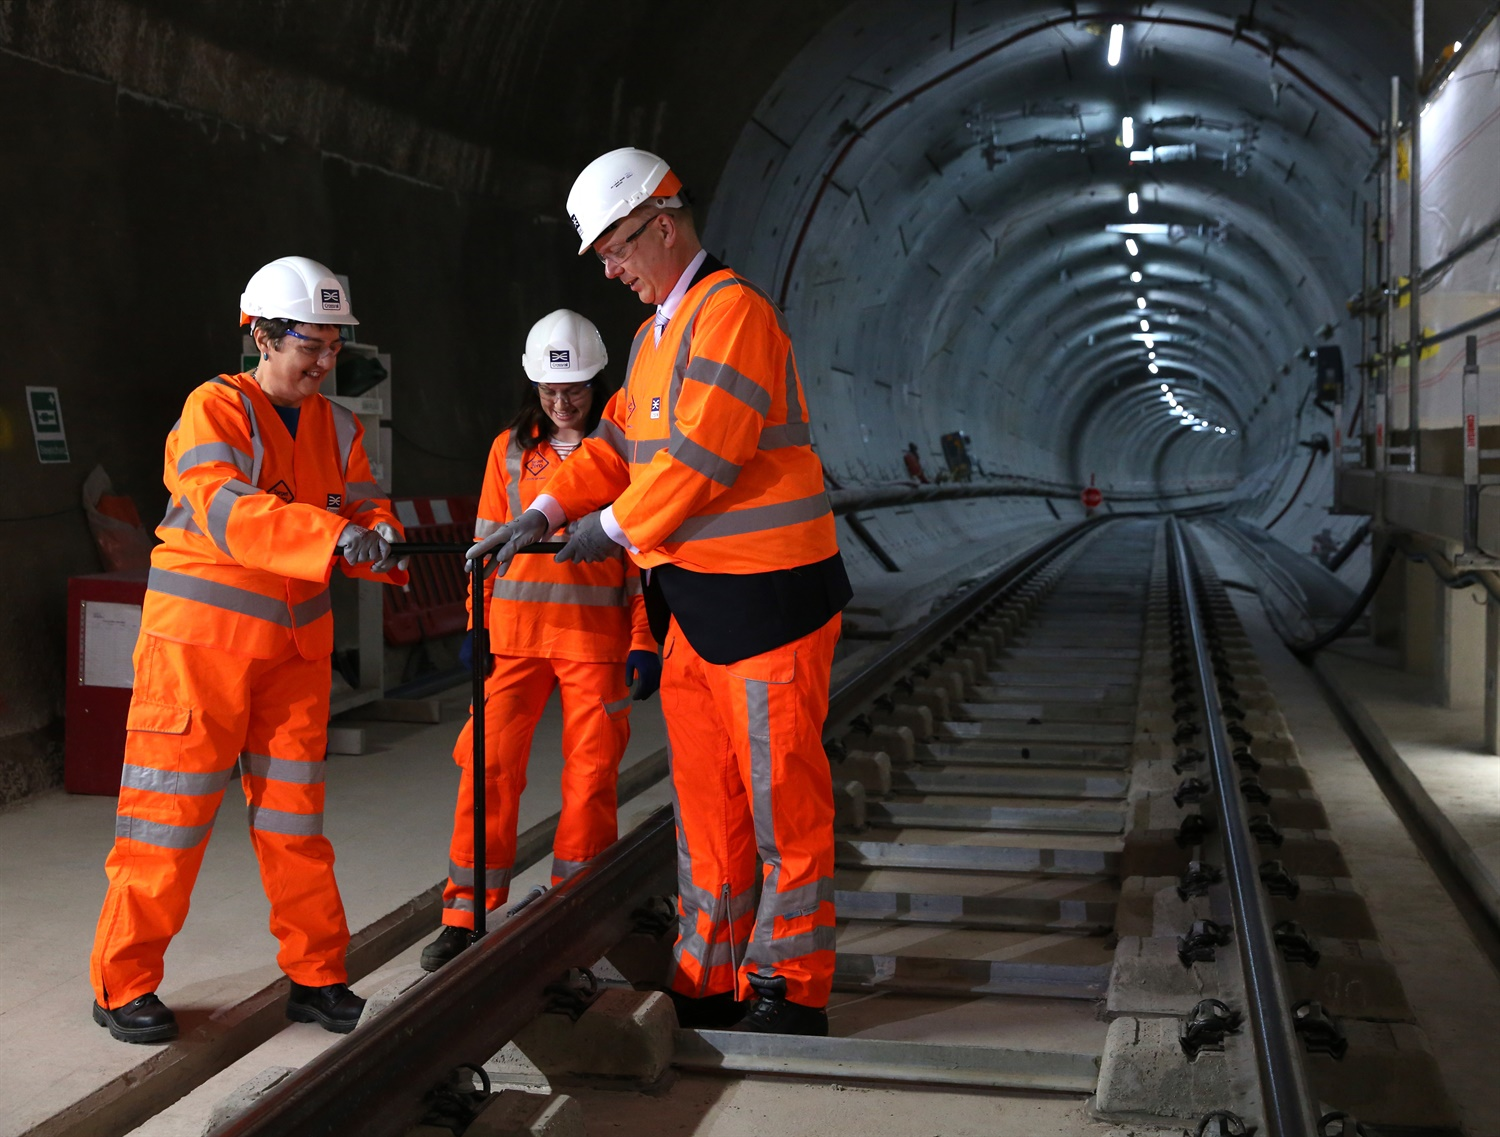 Elizabeth Line celebrates key milestone as track installation work completed